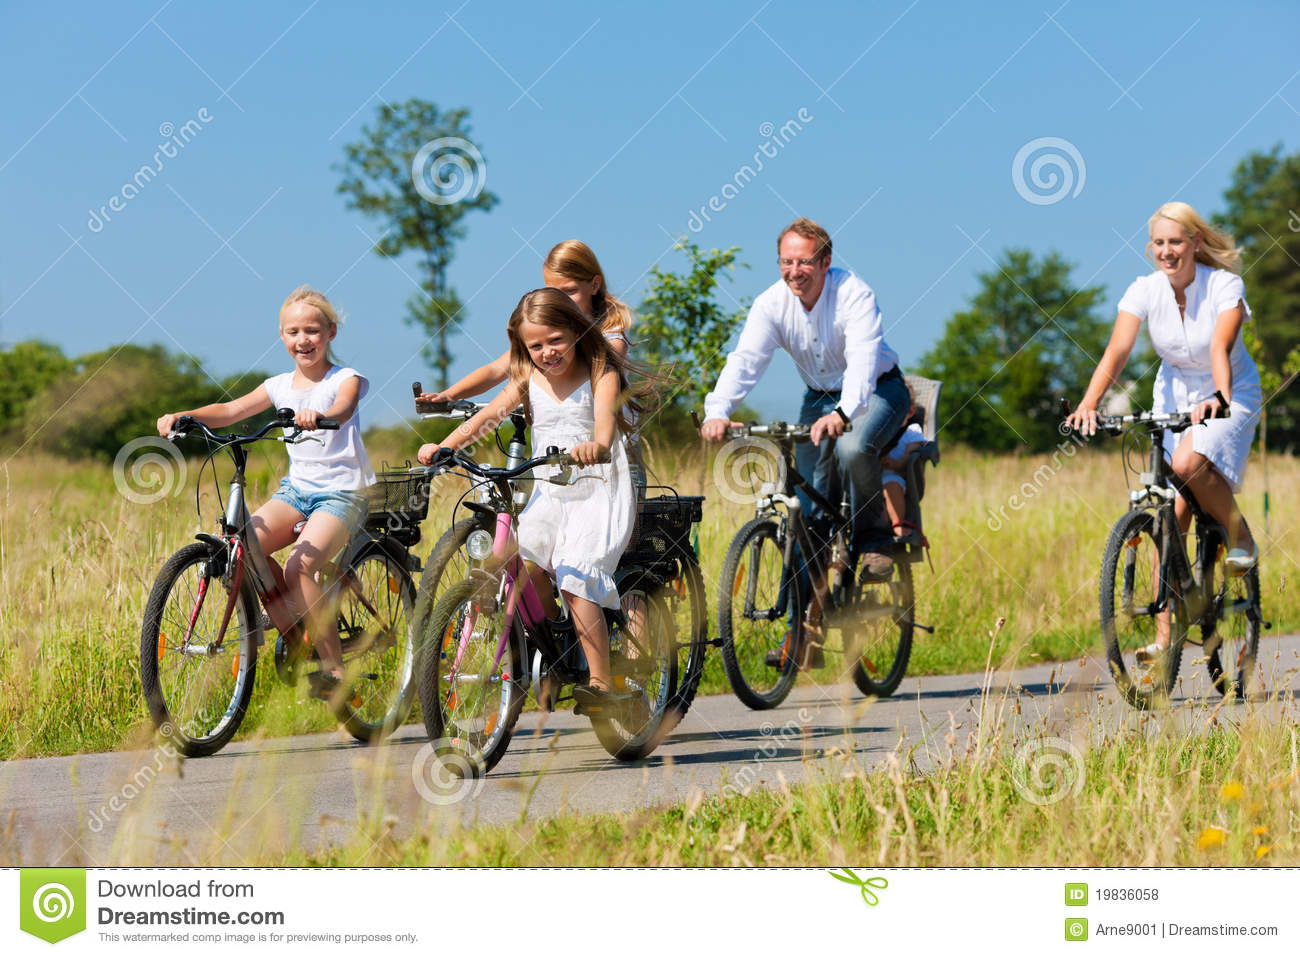 Family Cycling Outdoors In Summer Stock Photo